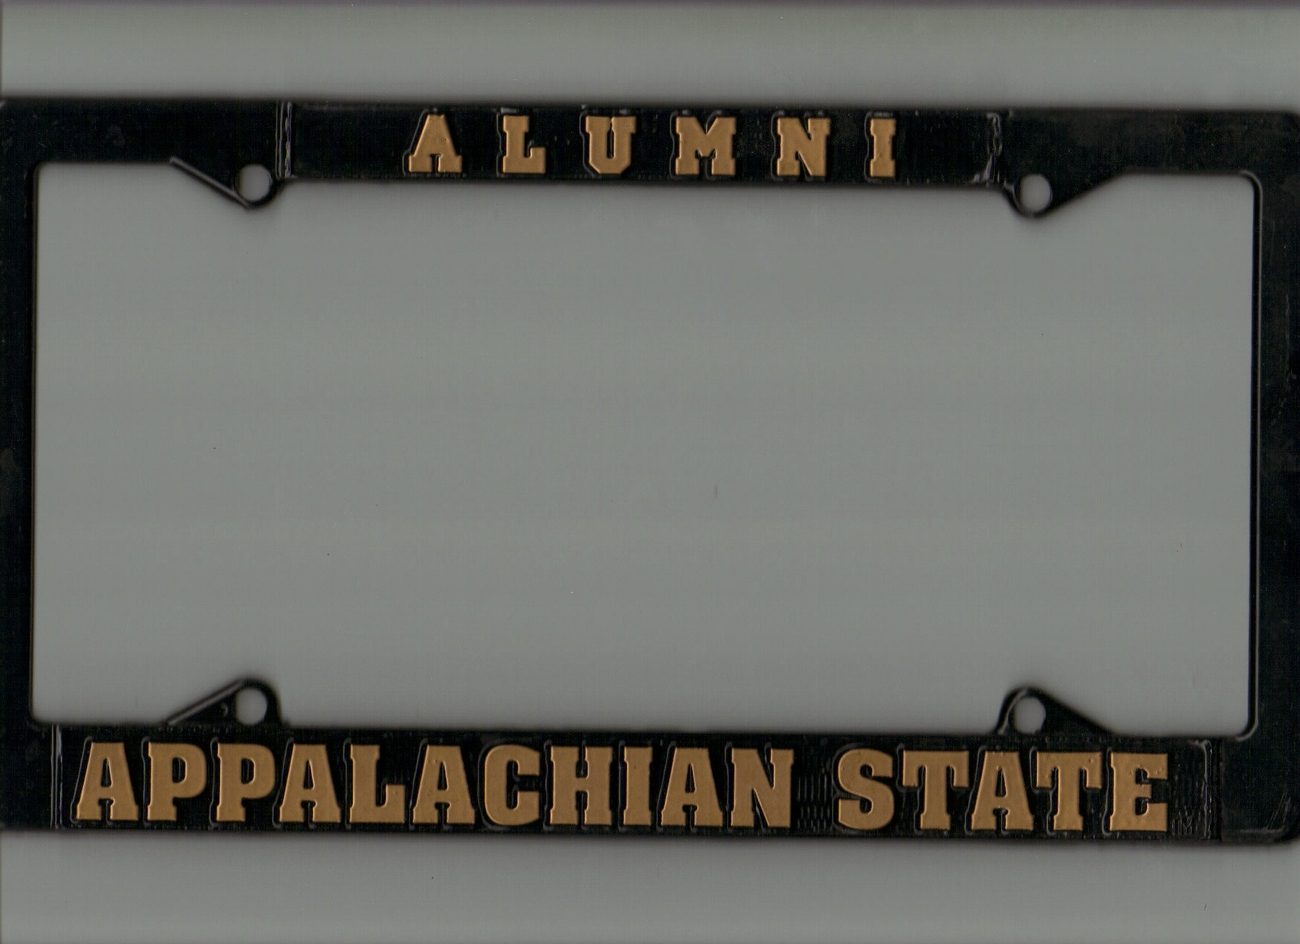 Appalachian State University 3-time National Champions Tag and Holder